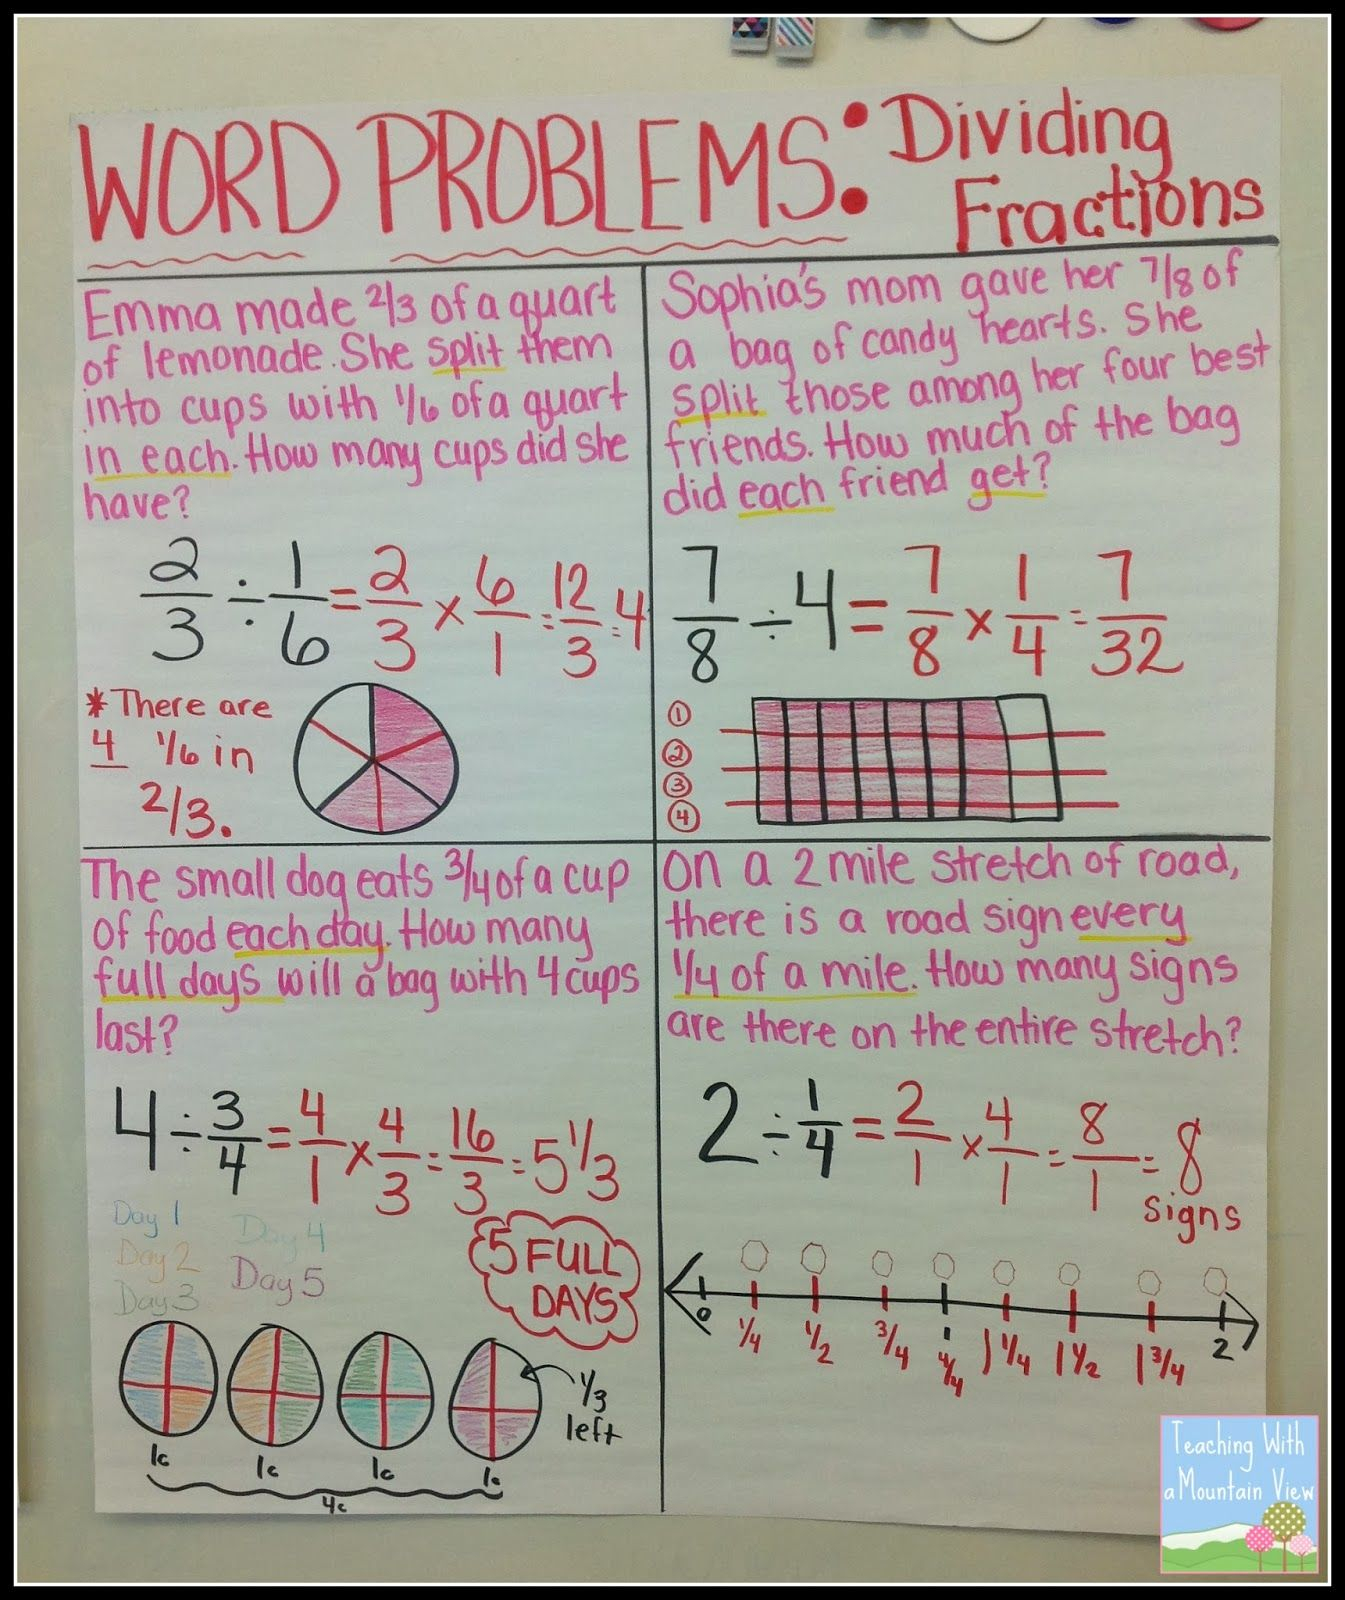 hight resolution of Fraction Division Worksheets 6th Grade   Printable Worksheets and  Activities for Teachers